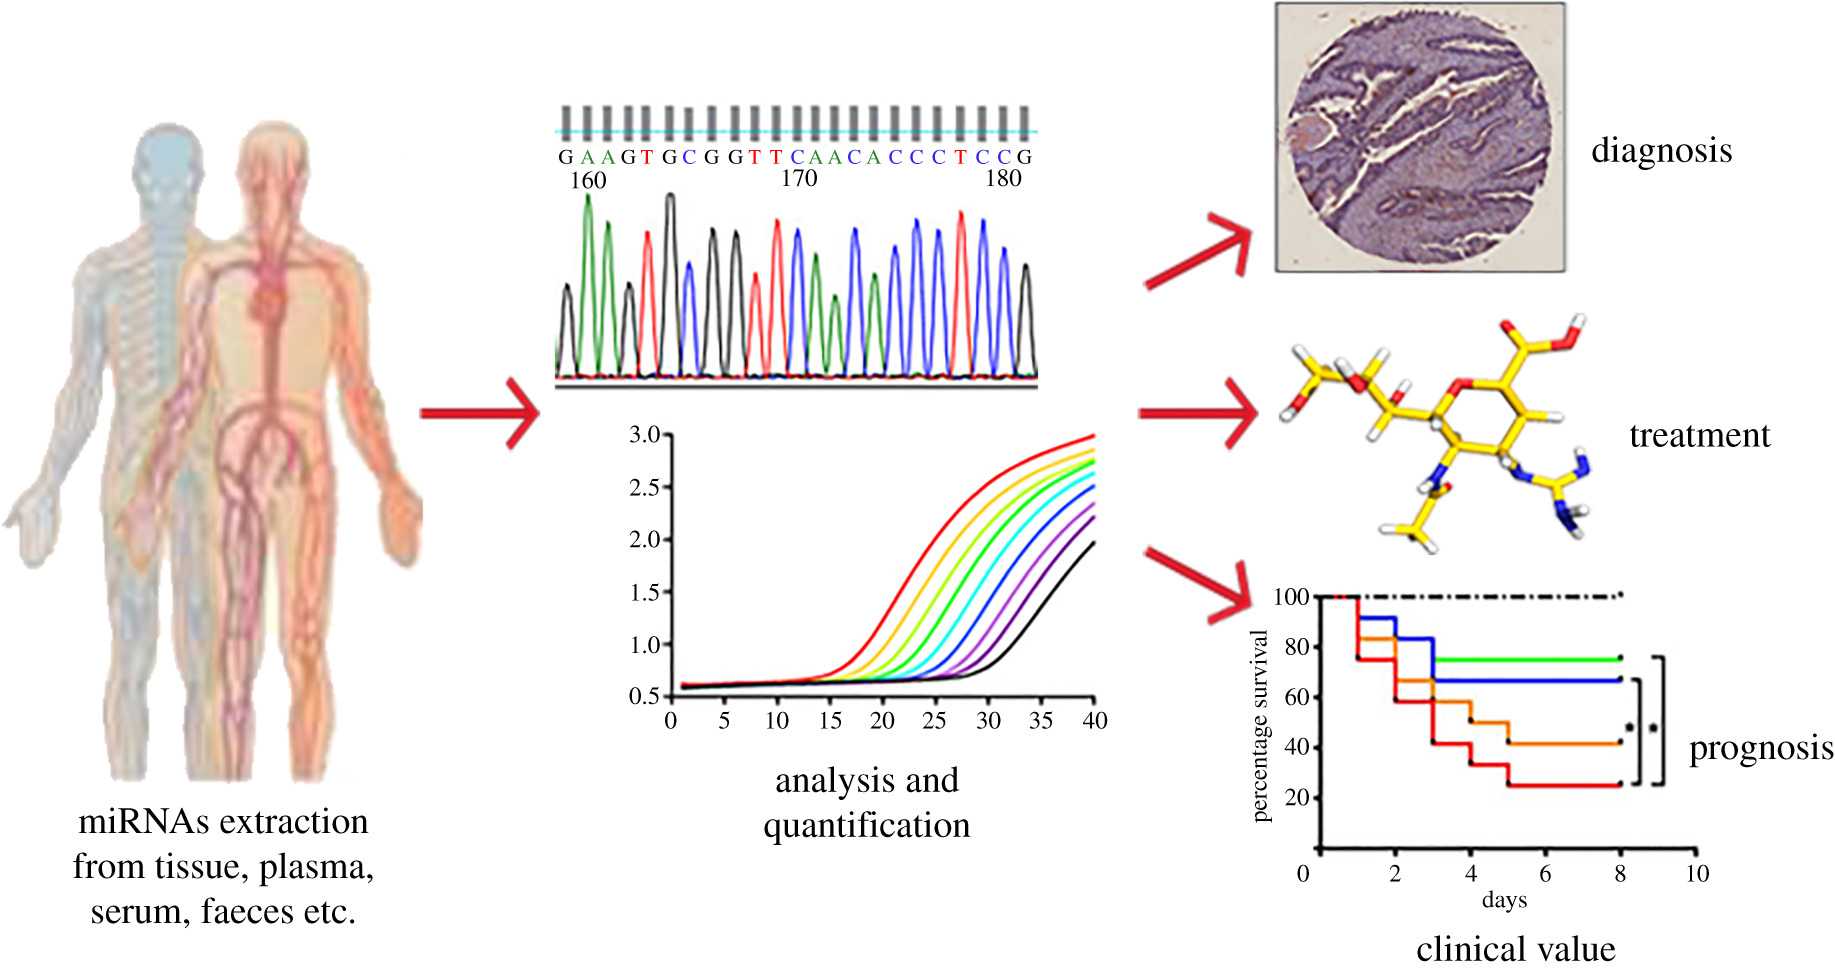 Emerging Microrna Biomarkers For Colorectal Cancer Diagnosis And Prognosis Open Biology